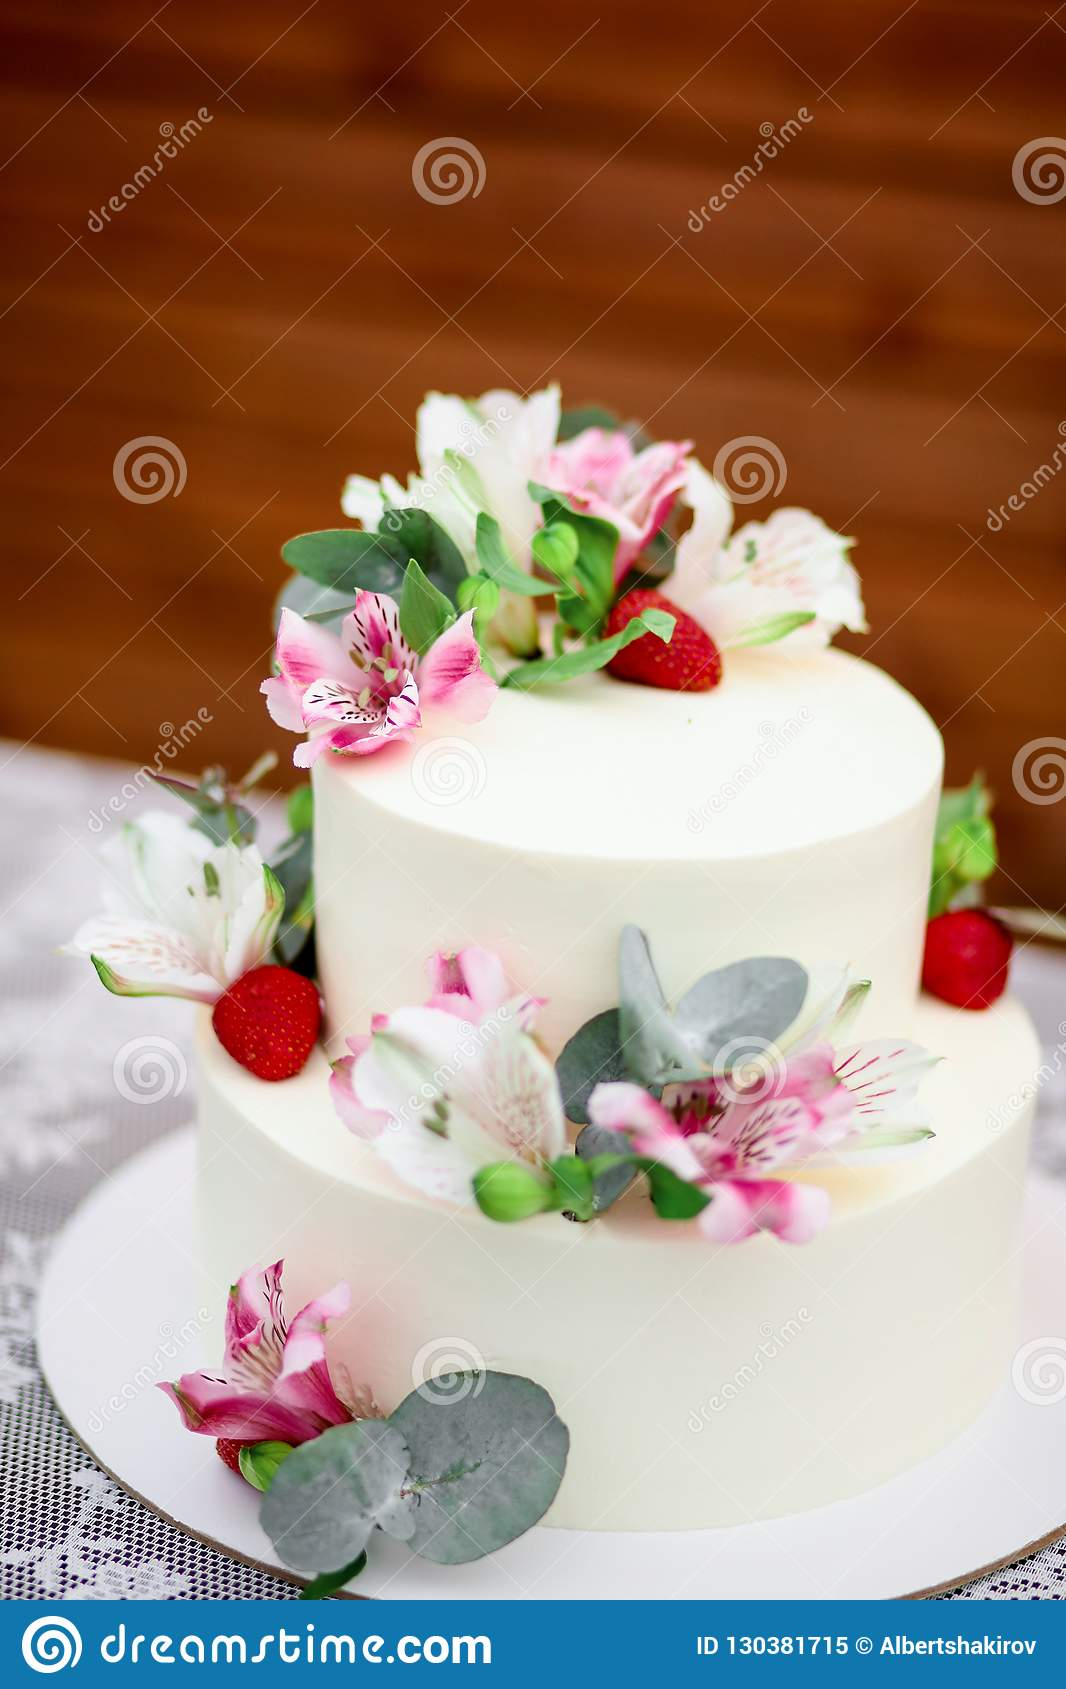 Stupendous Delicious Wedding Cake Decorated White Icing With Exotic Flowers Funny Birthday Cards Online Overcheapnameinfo